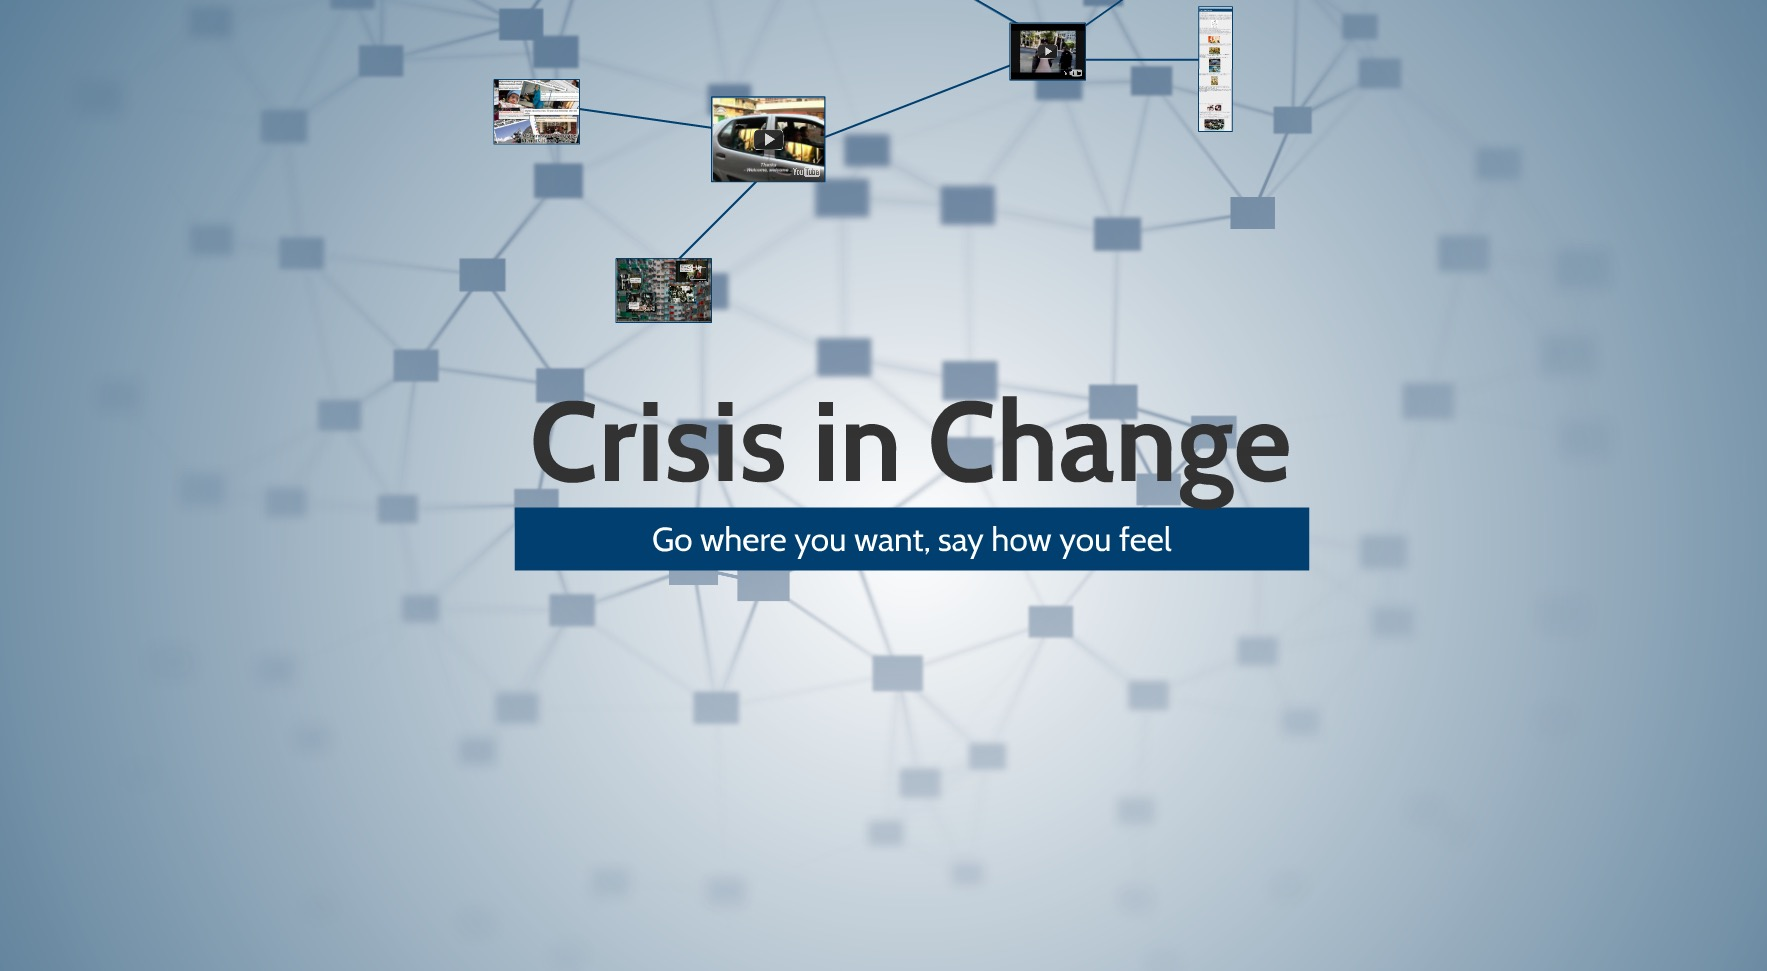 Crisis in Change